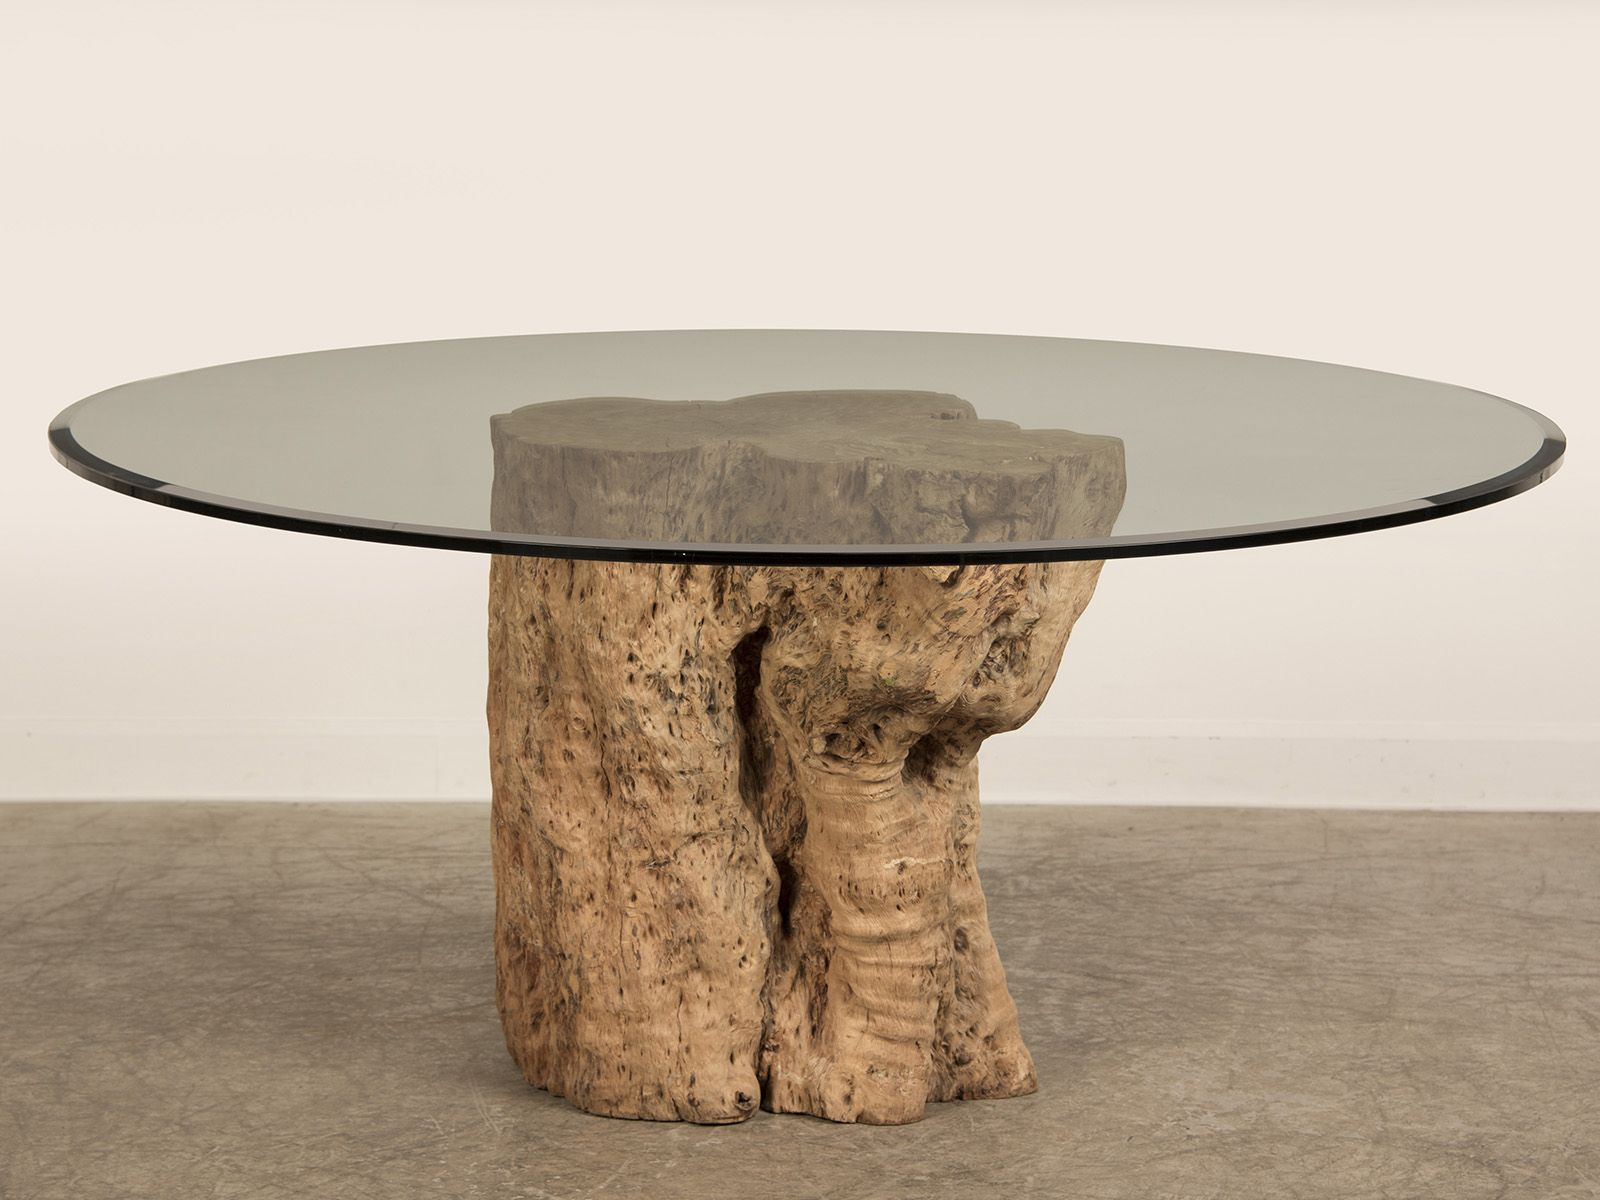 Awesome Teak Tree Trunk Table With Circled Glass Top As Inspiring Cocktail Table Ideas With Natural Tree Trunk Table Stump Coffee Table Tree Trunk Coffee Table